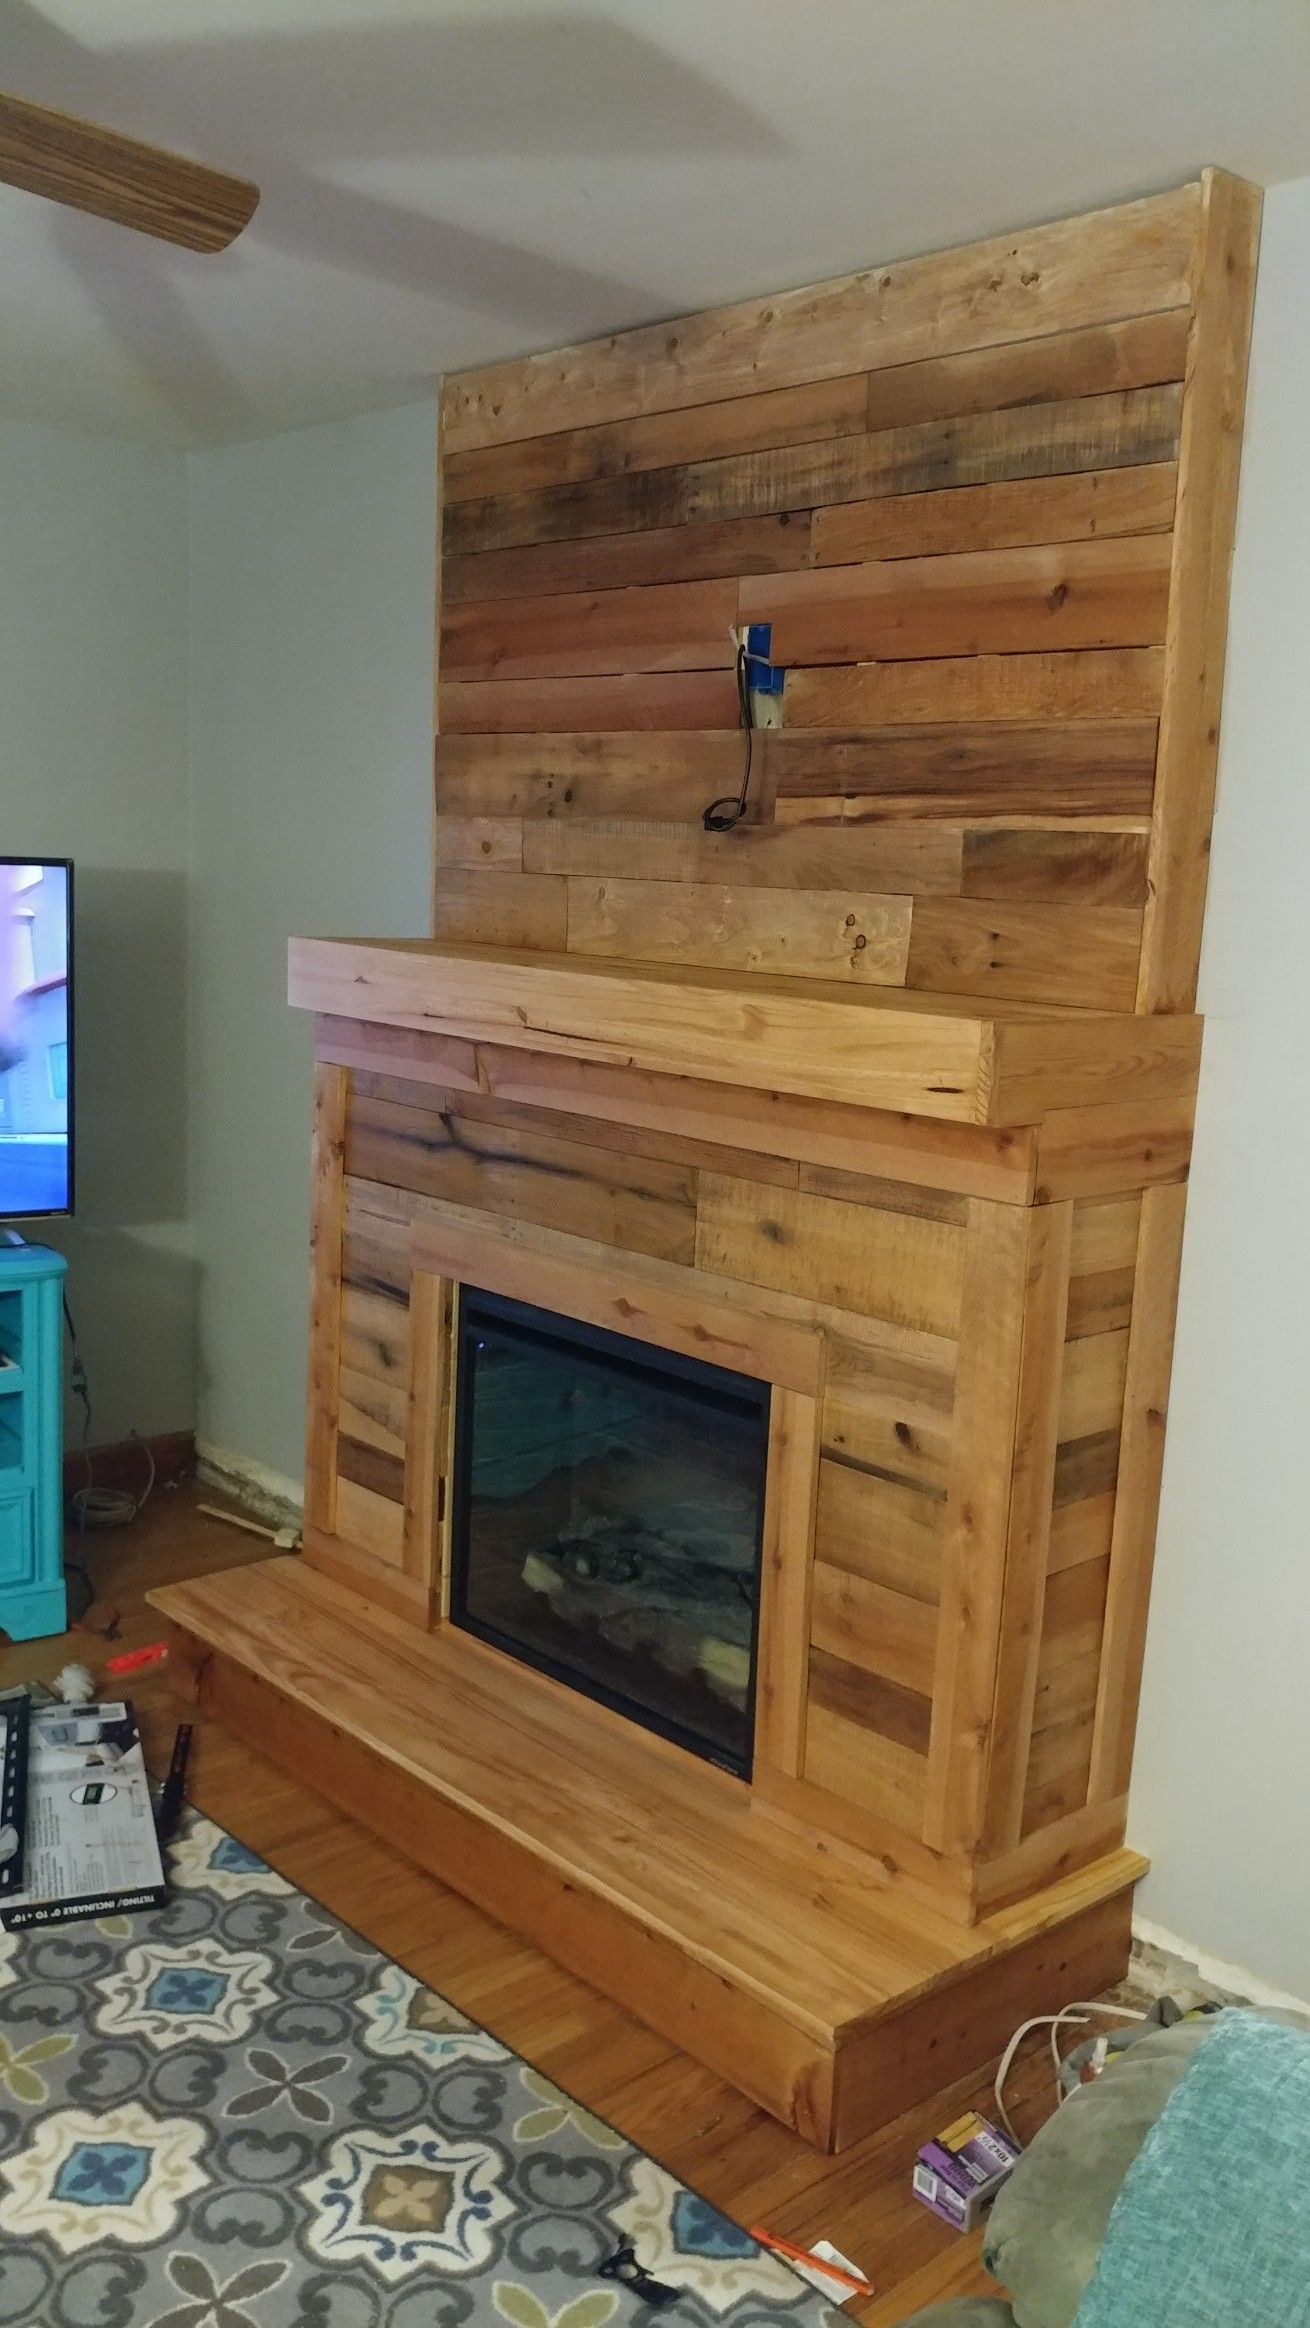 Made out of 2x4s and pallet wood minis the gireplace - Chimeneas decorativas en madera ...